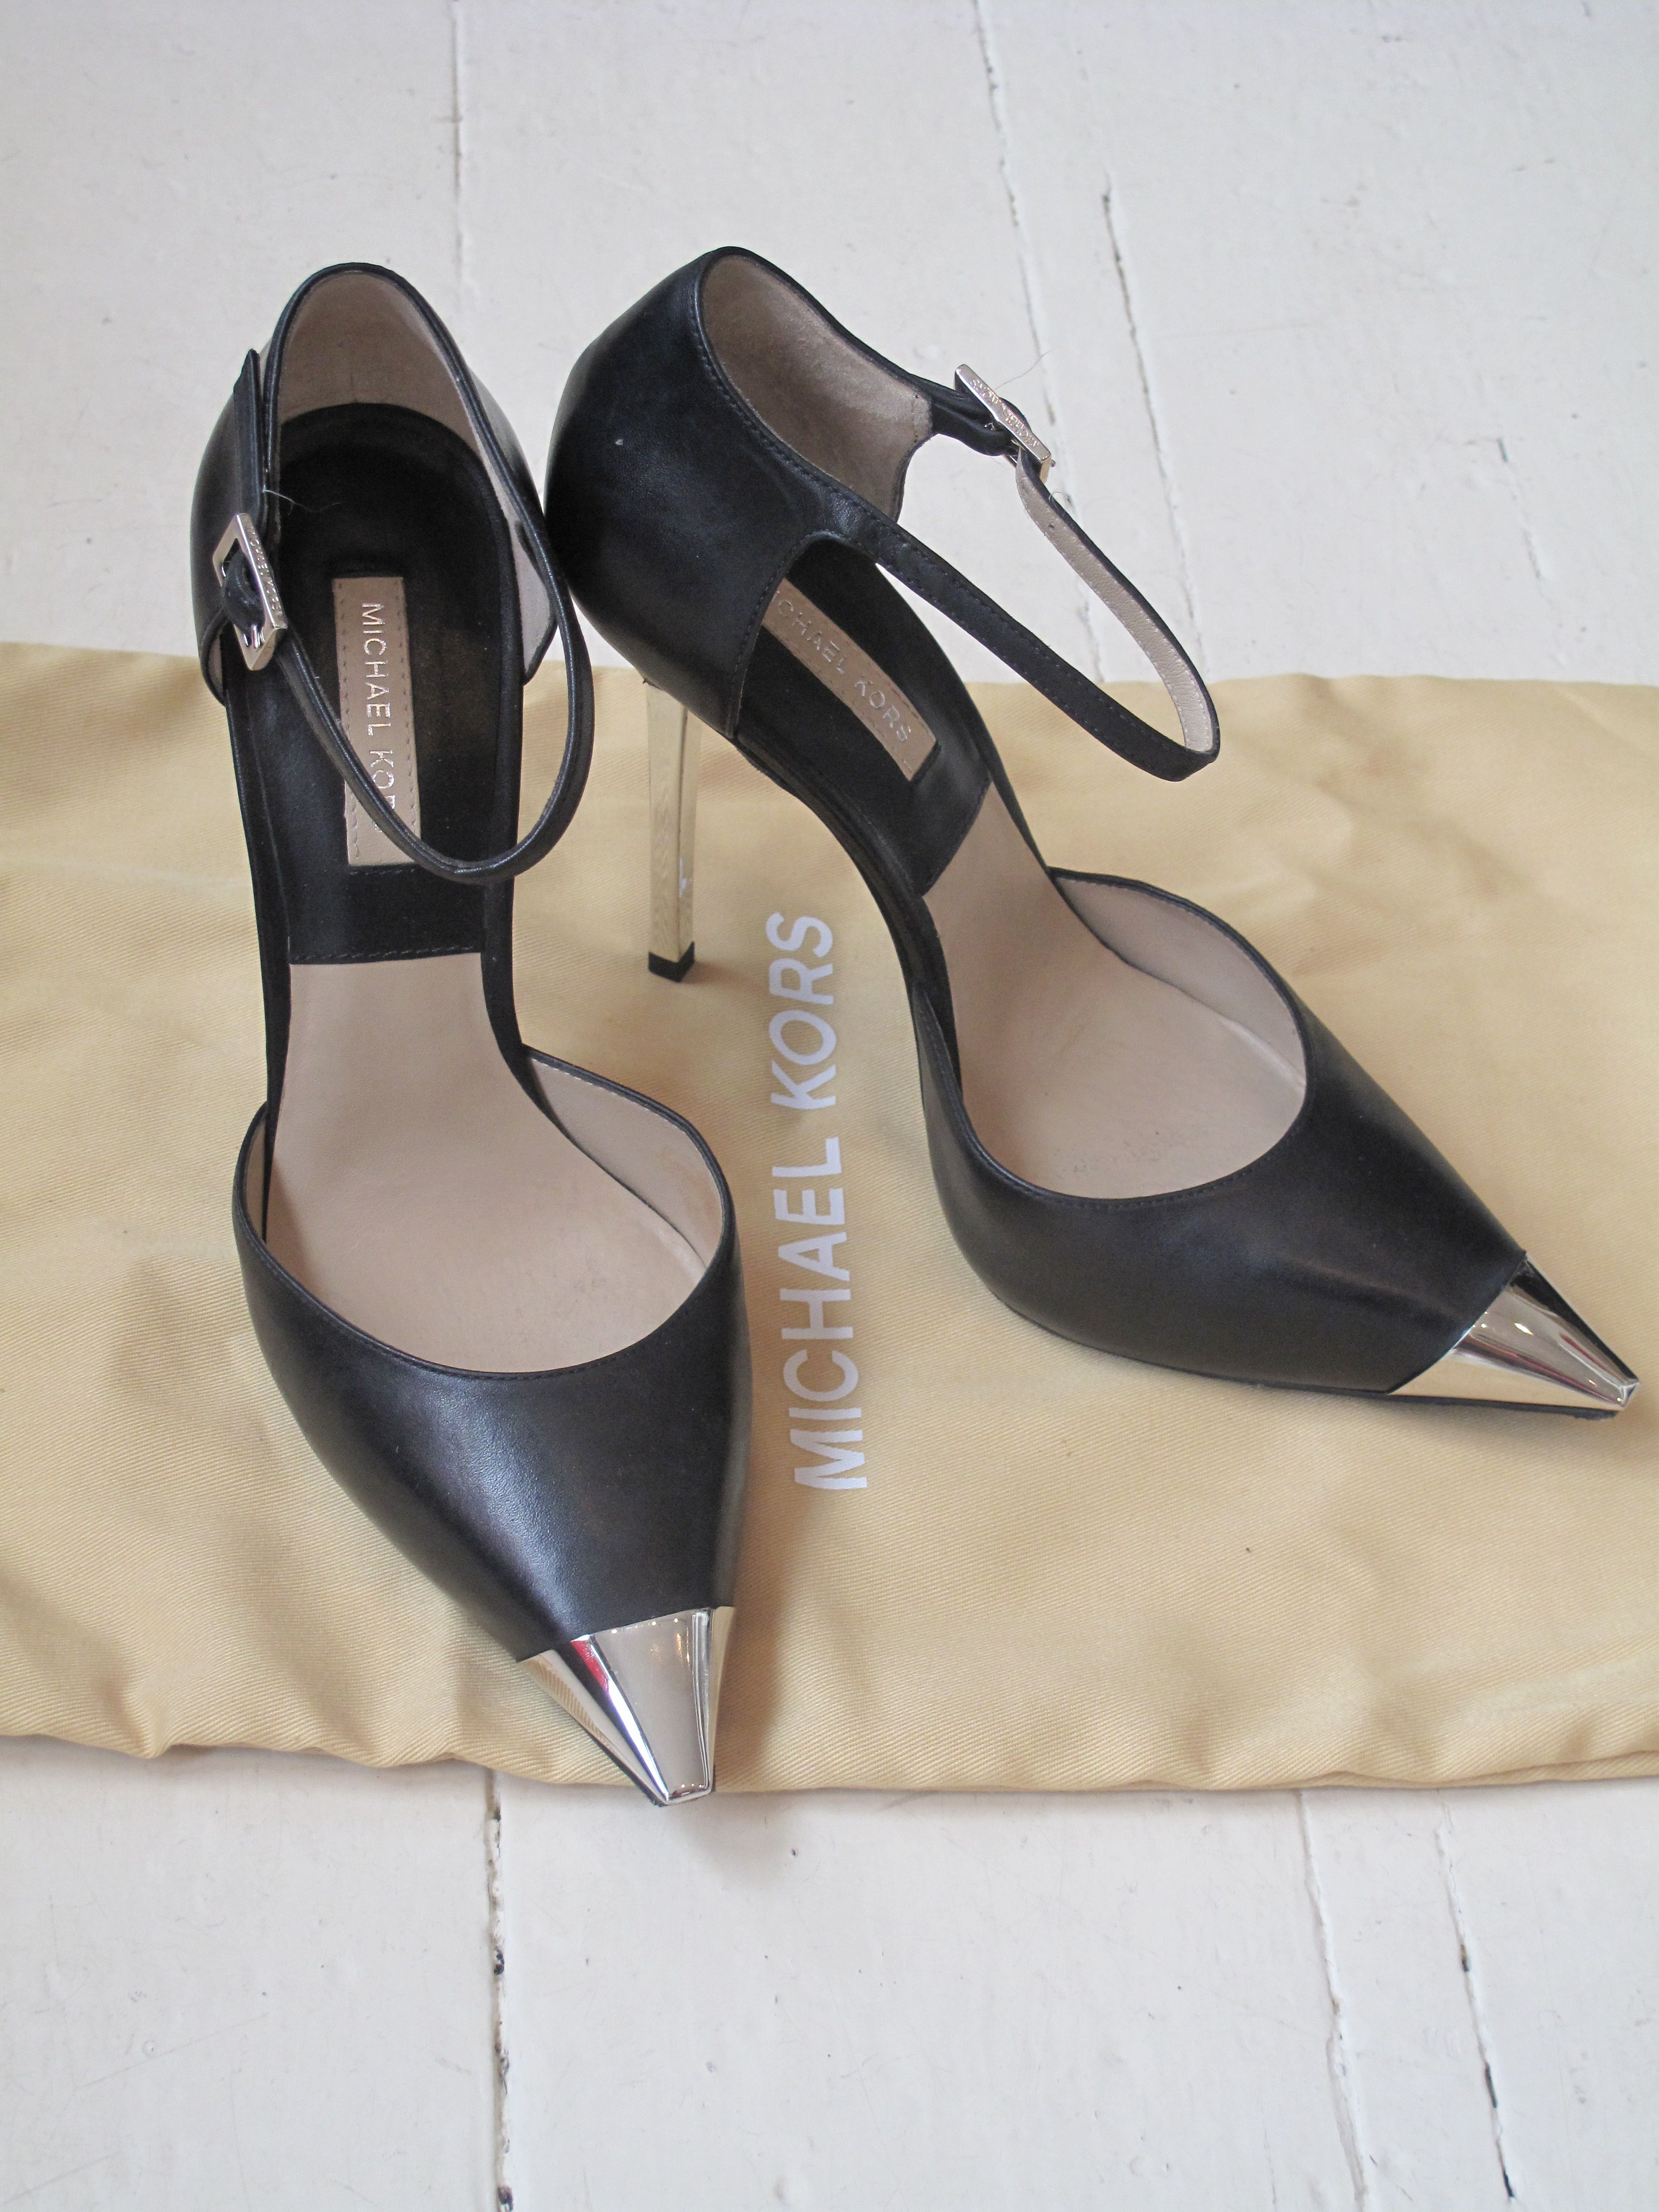 Michael Kors Black Leather Shoes With Silver Tips And Heels